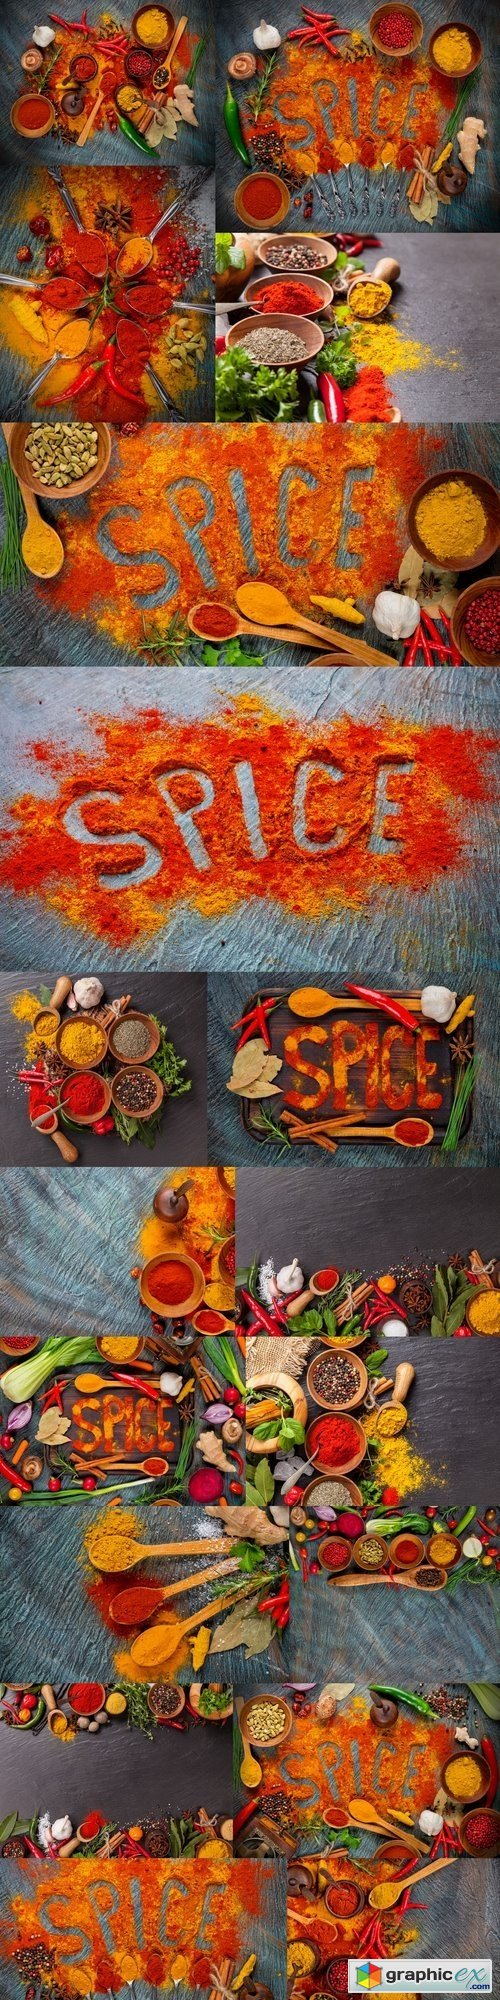 Coulinary concept with lettering spice